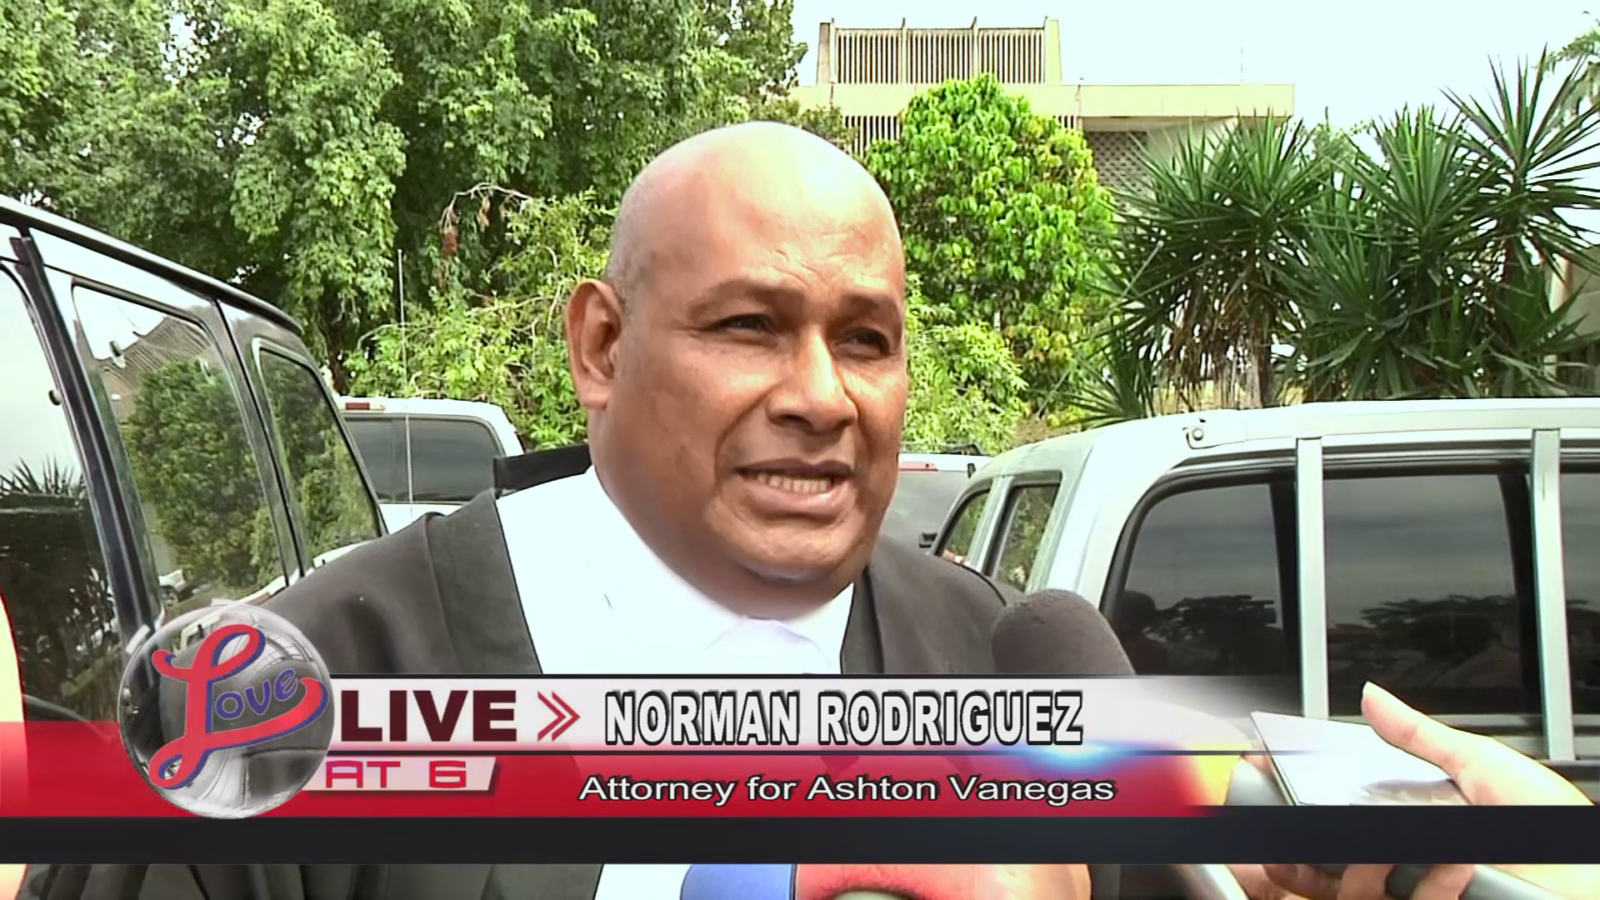 Norman Rodriguez, Attorney for Ashton Vanegas